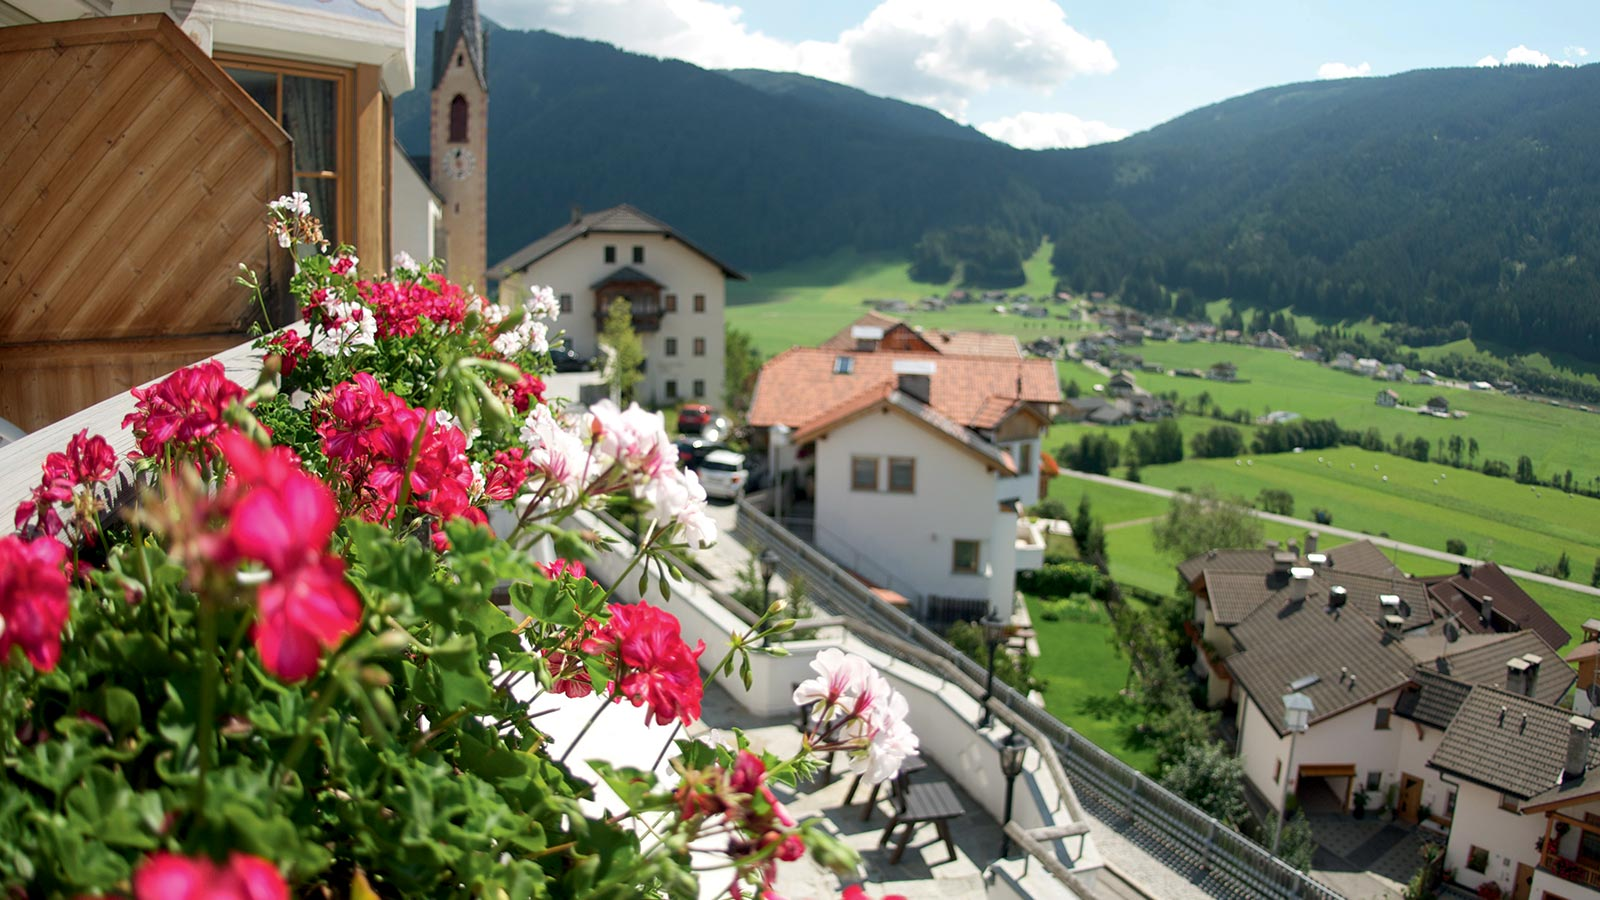 View from the balcony of one of the rooms at Hotel Gschwendt on the green meadows of Val Casies